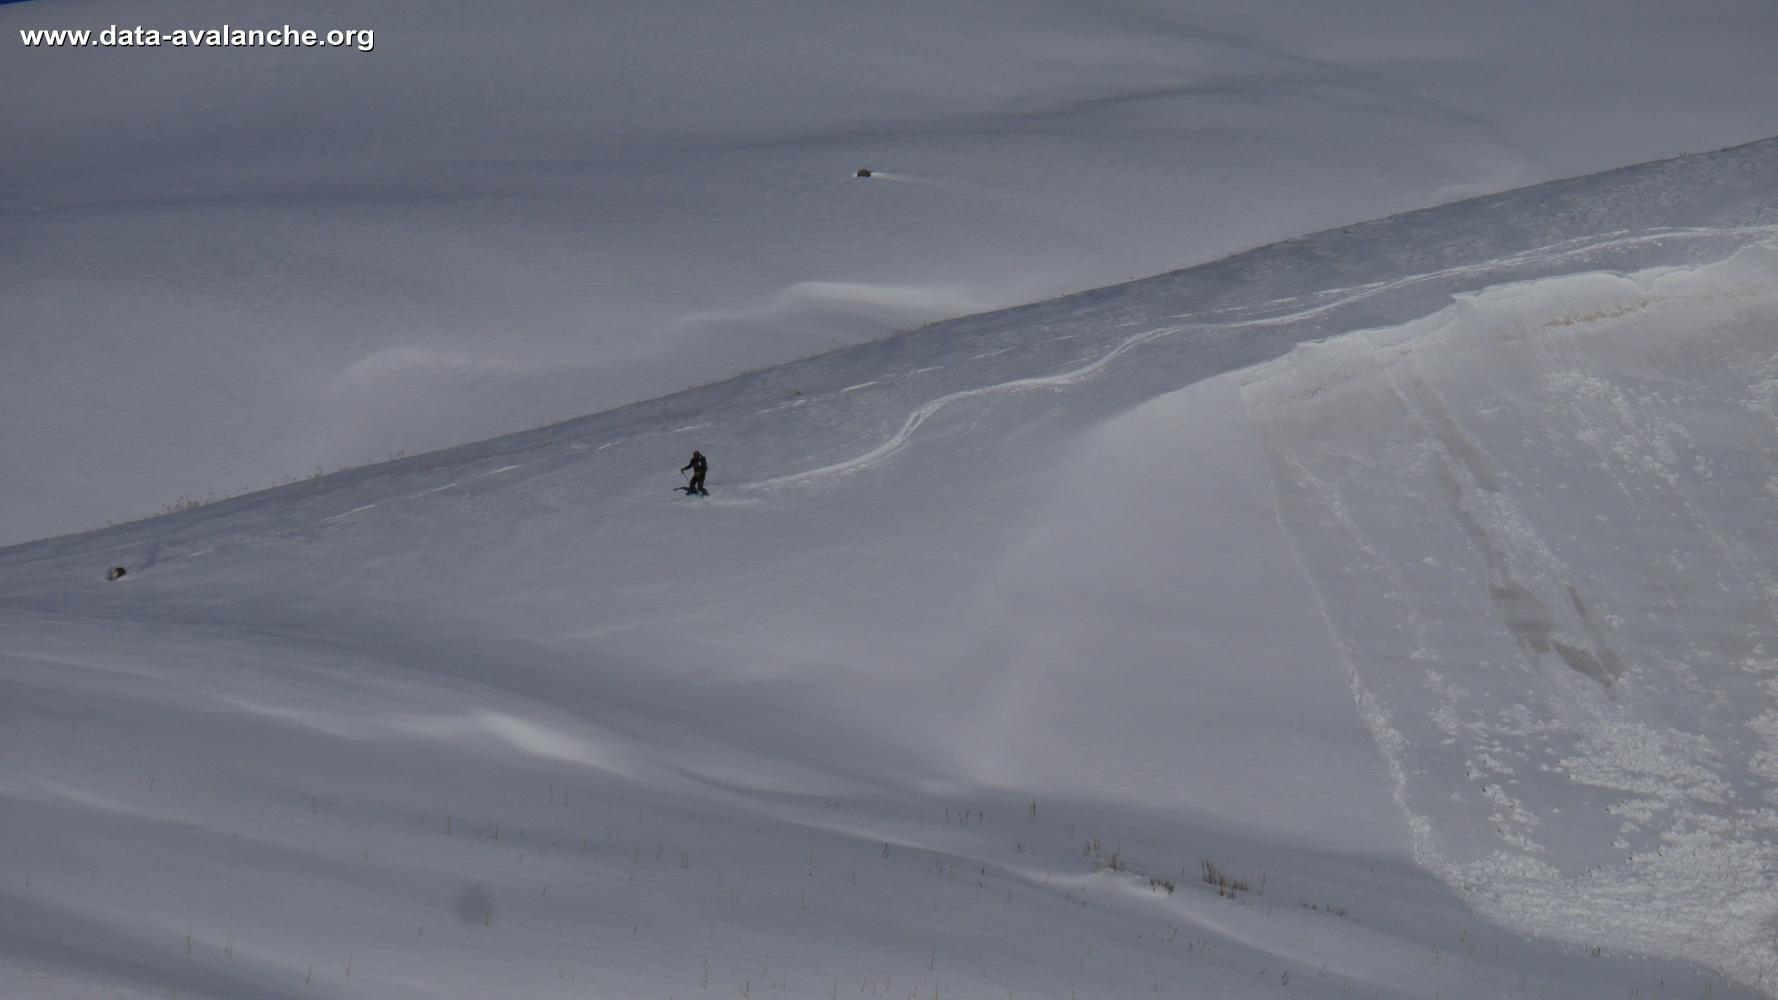 Avalanche Oisans, secteur Aiguillon - Photo 1 - © Gilles Ballini